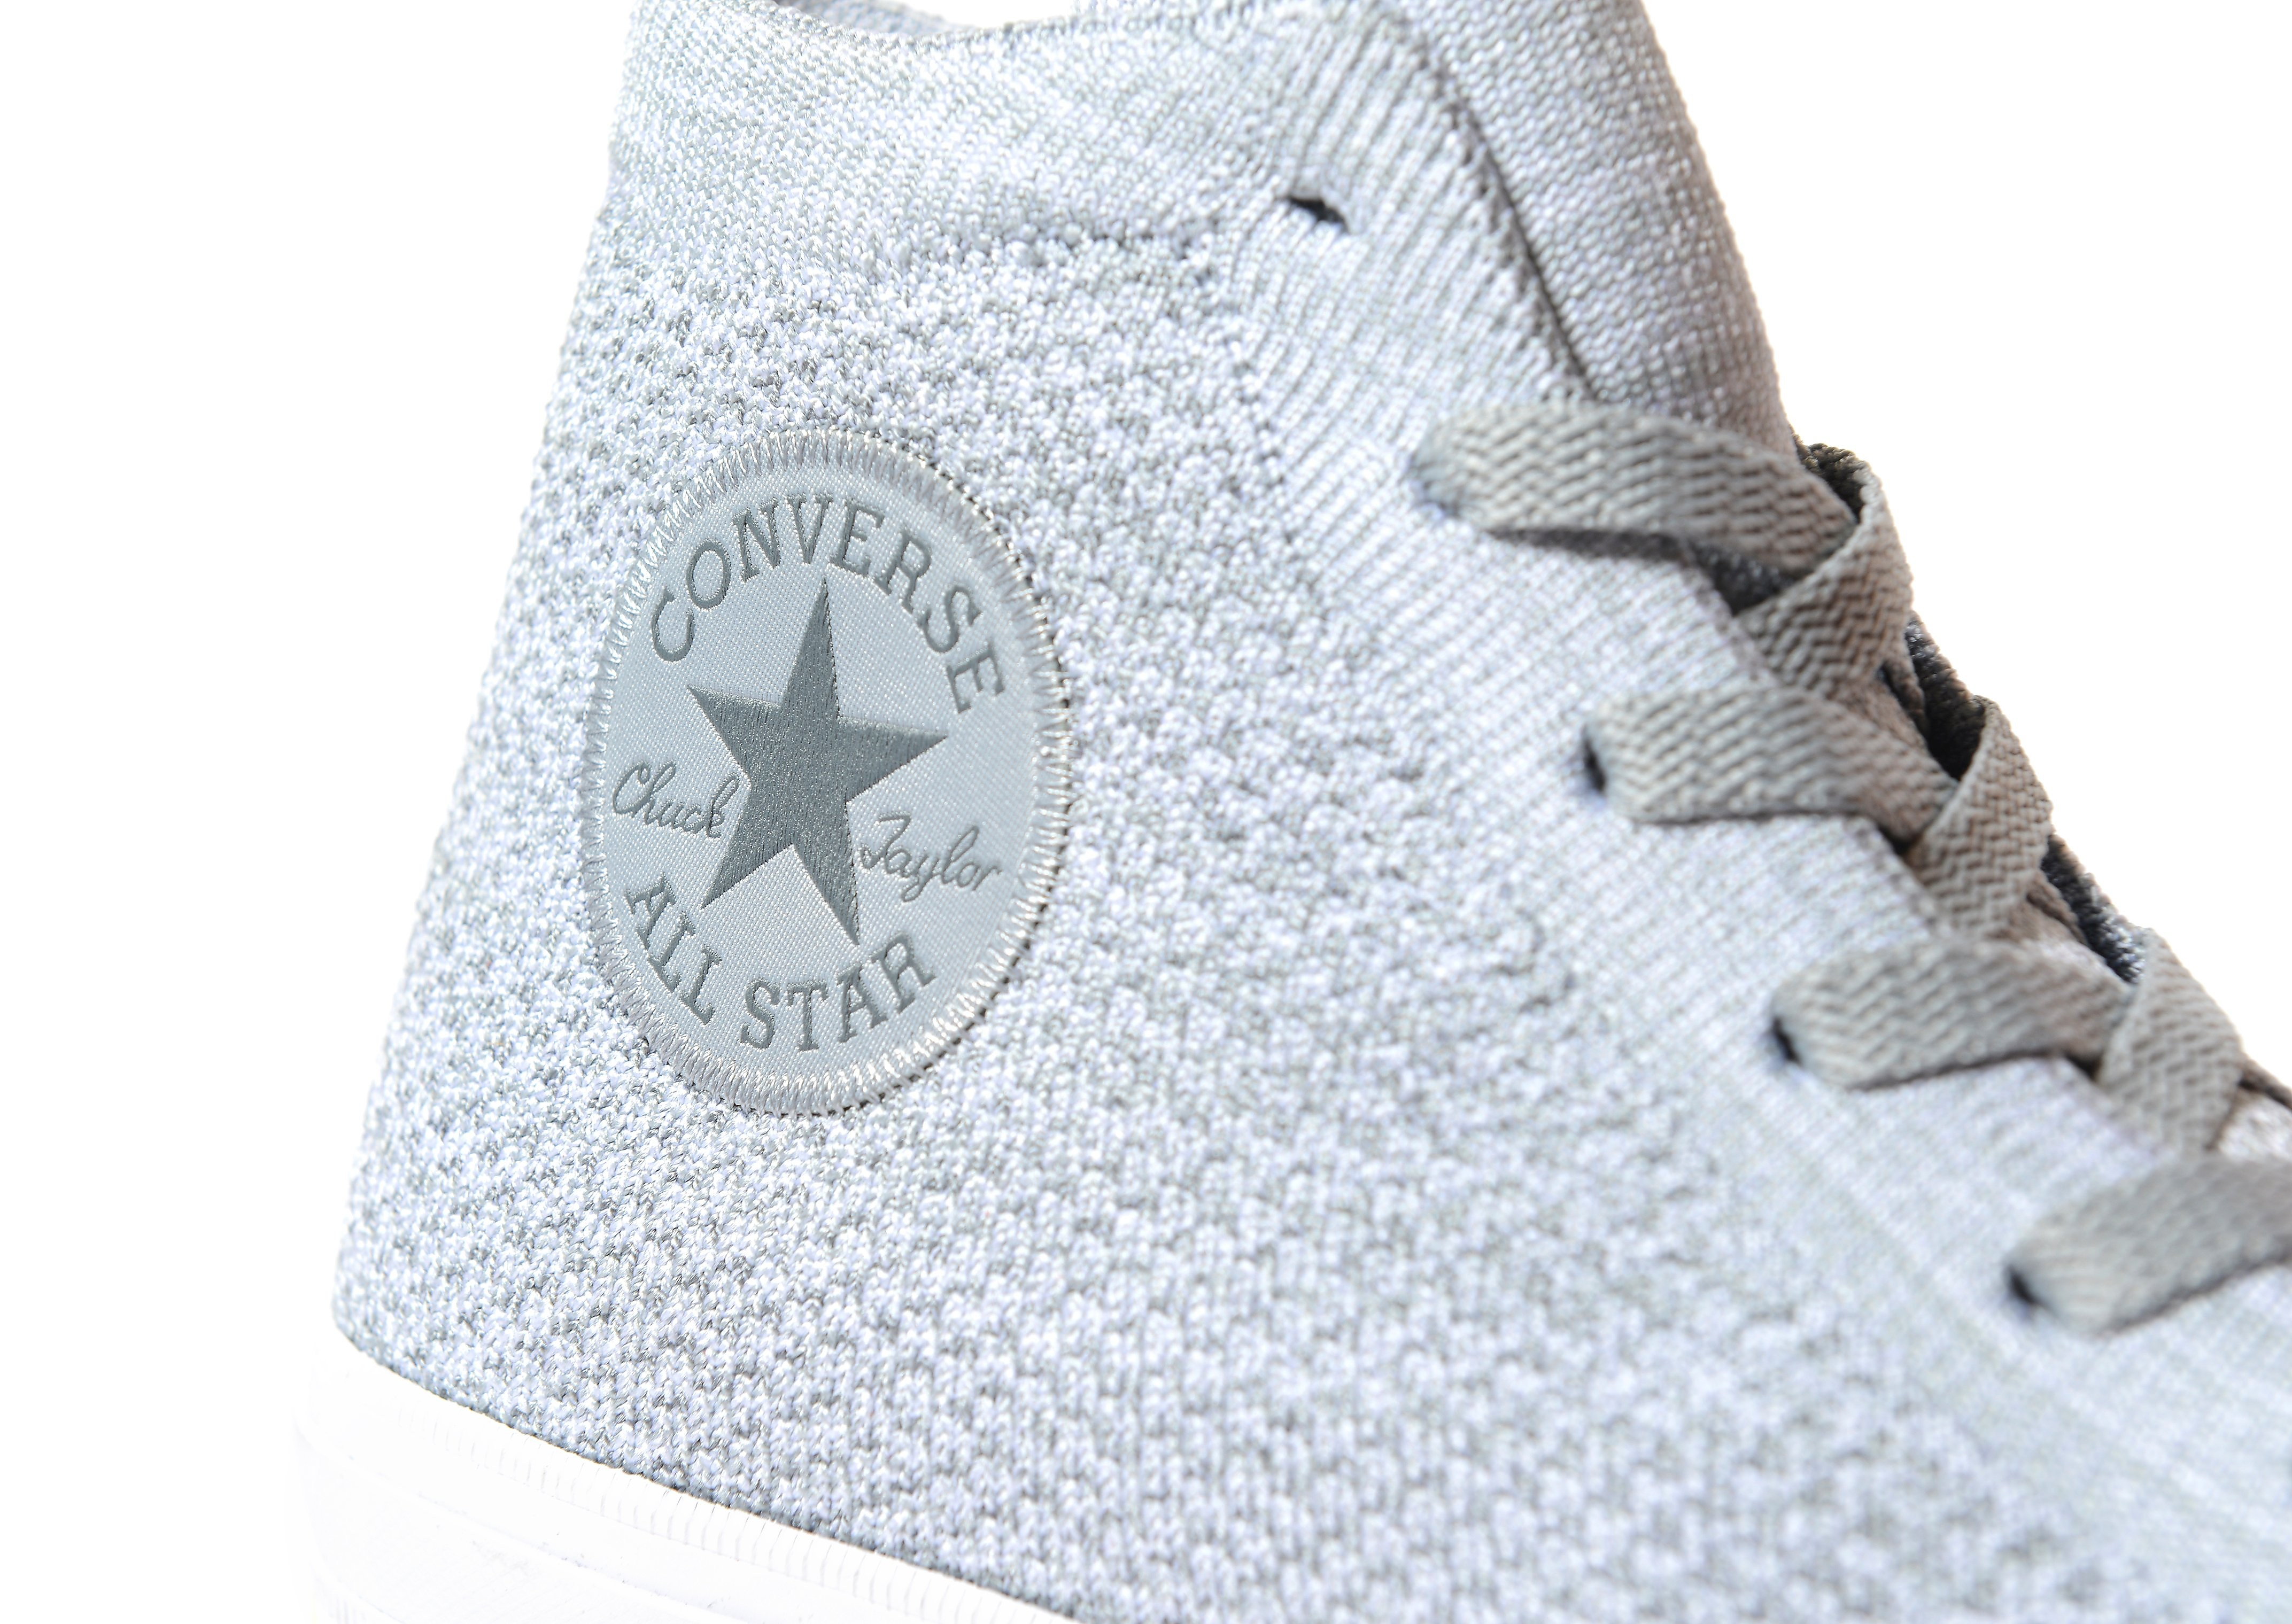 Converse Chuck Taylor All Star Flyknit